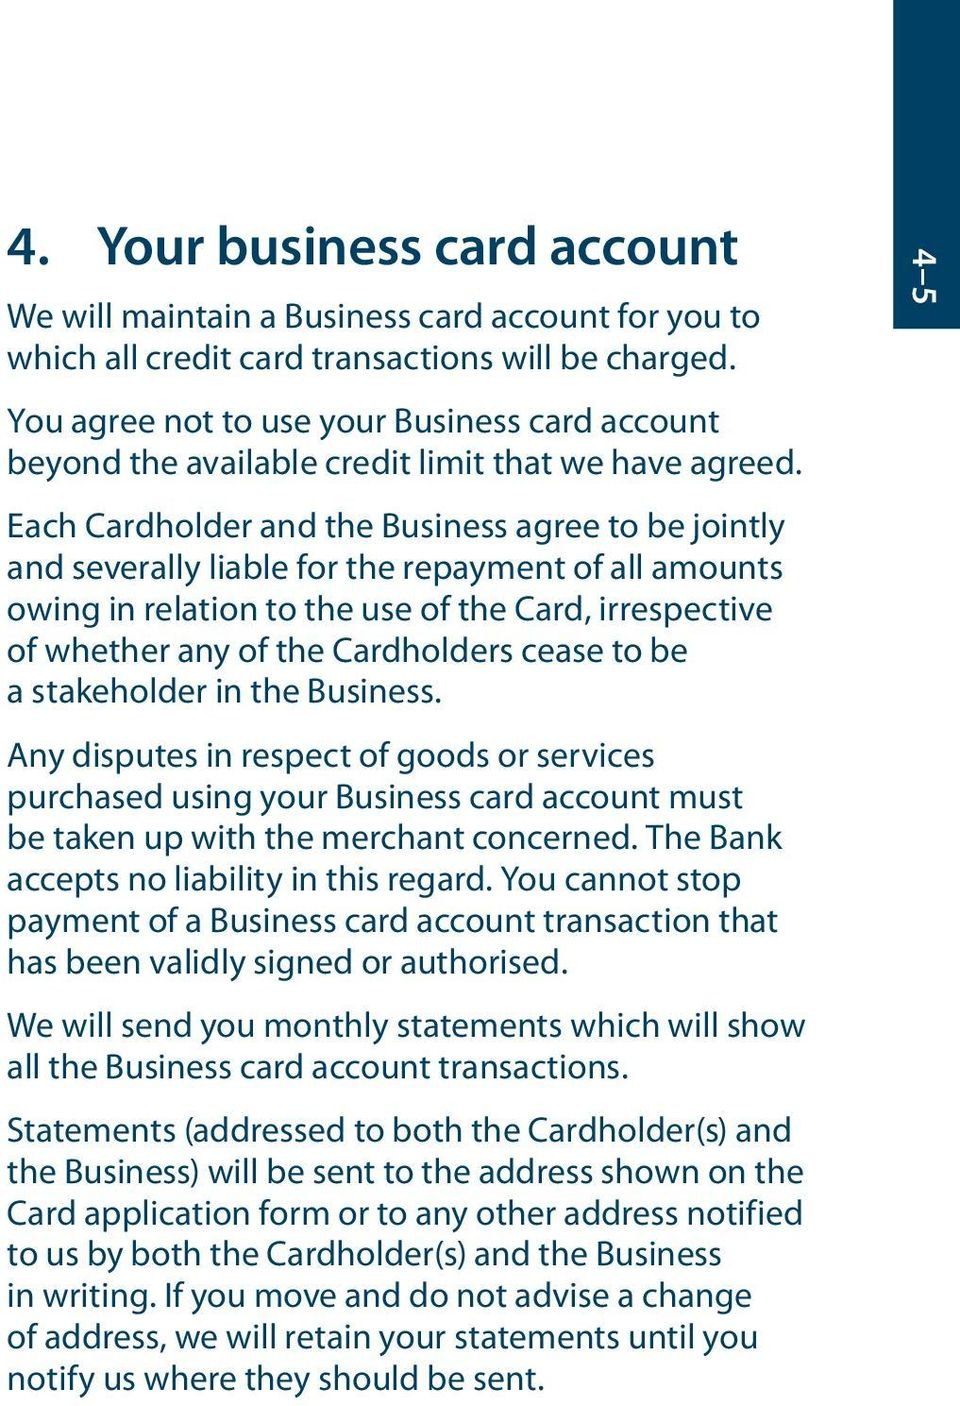 Each Cardholder and the Business agree to be jointly and severally liable for the repayment of all amounts owing in relation to the use of the Card, irrespective of whether any of the Cardholders